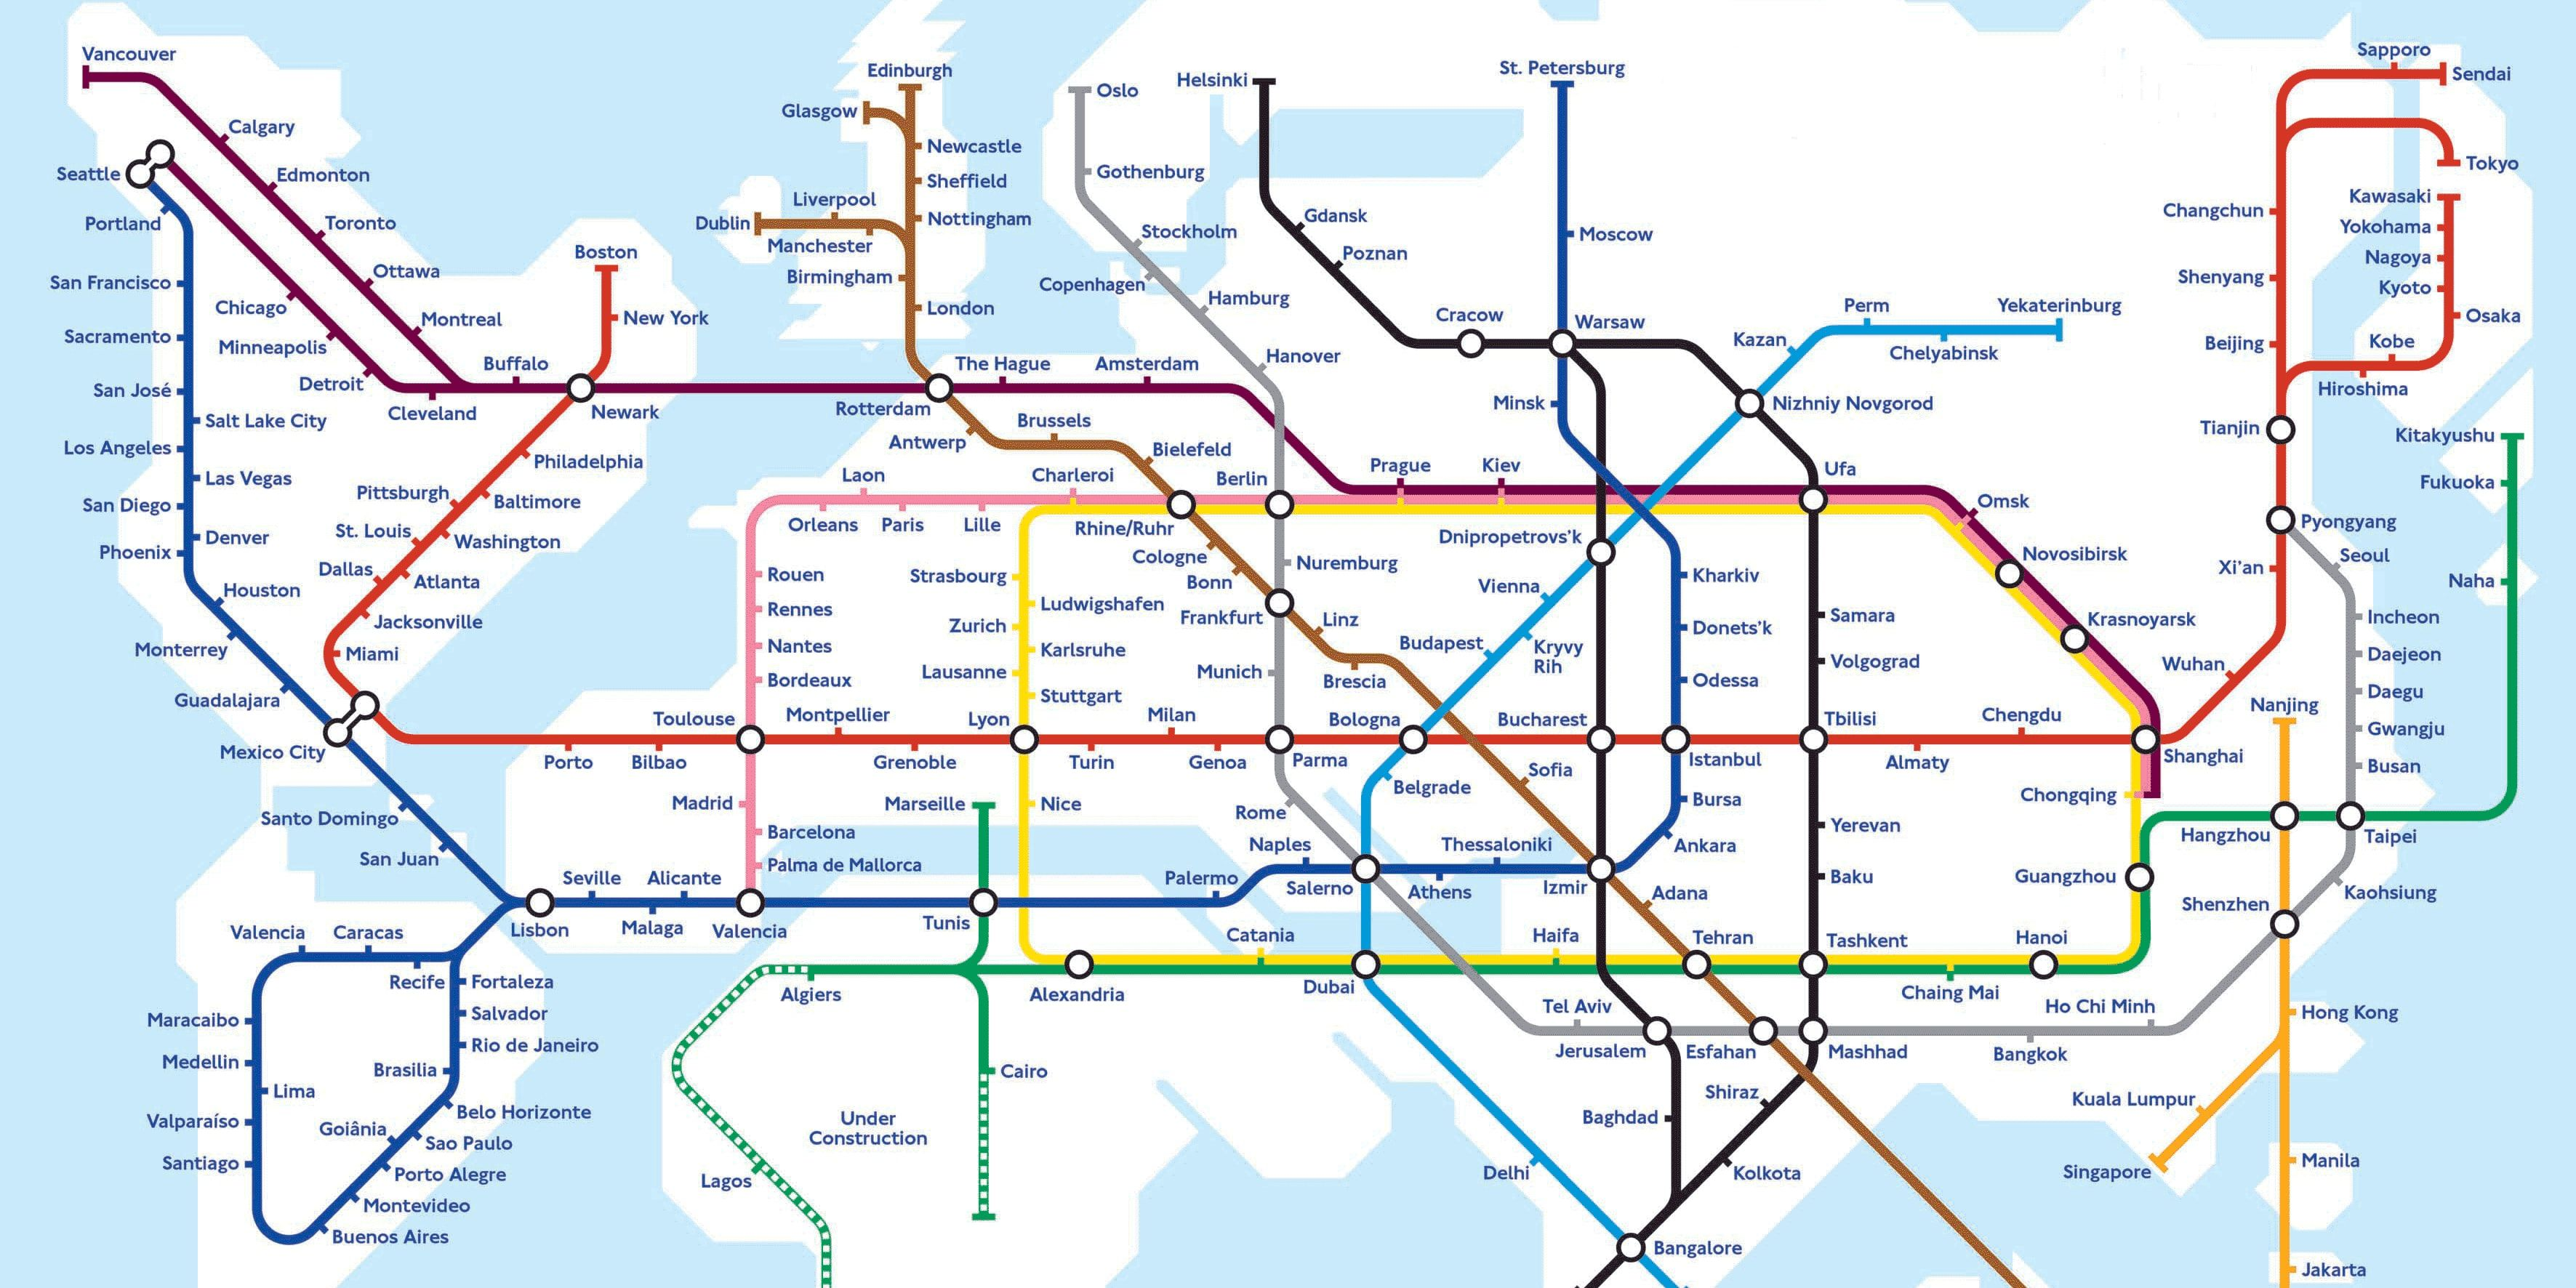 San Diego Subway Map.World Map Shows What A Hyperloop Future May Look Like Technology